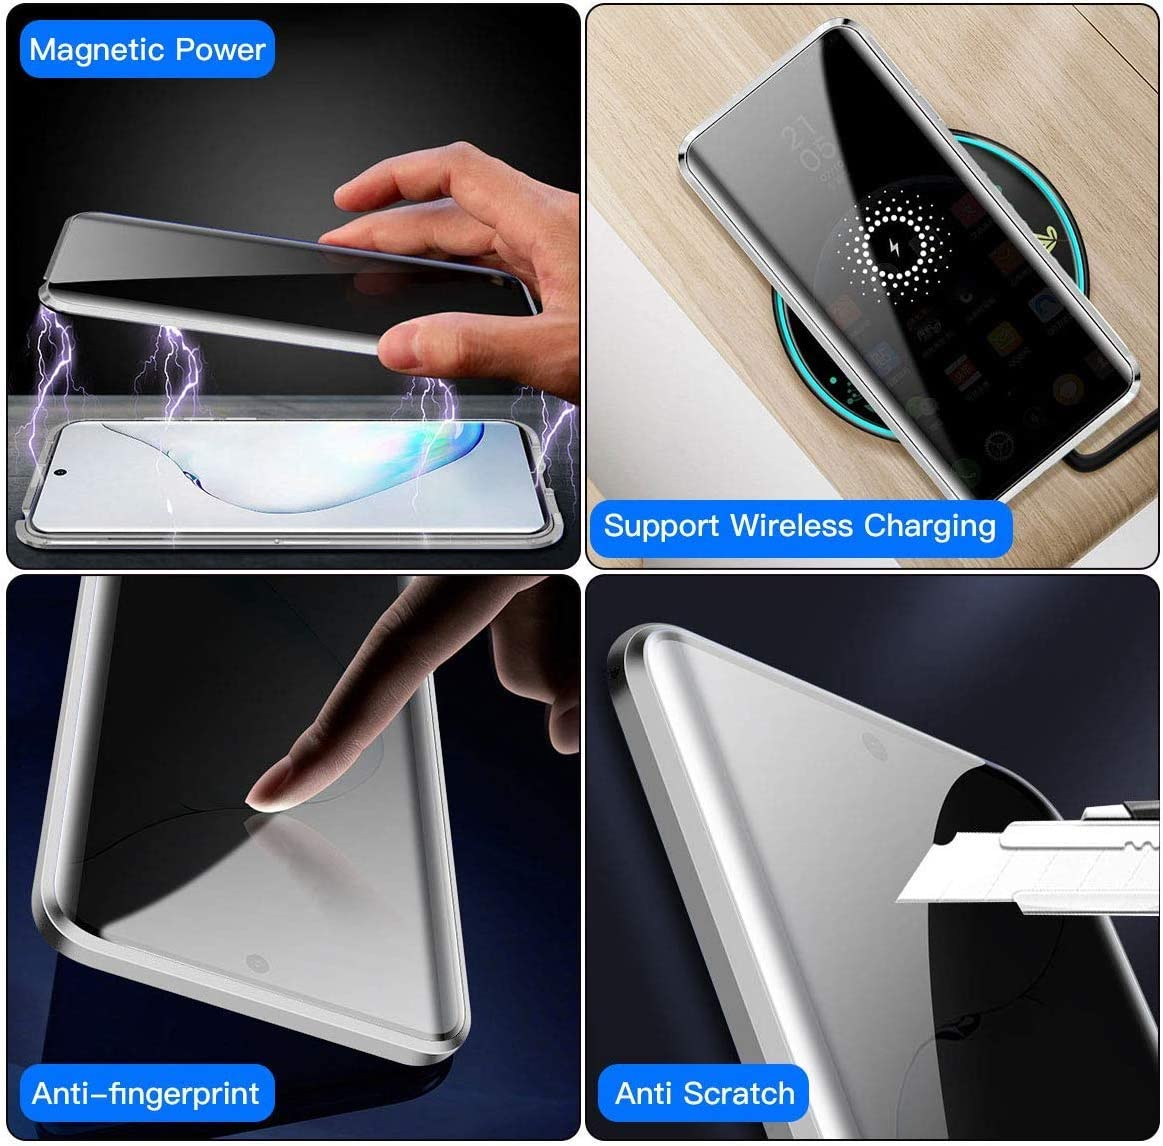 Case for Samsung Galaxy S20 Ultra Adsorption Magnetic Metal Bumper Cover Transparent Tempered Glass Anti-Scratch Case Thin 360 Degree Fully Body Protective Case,Black Integrated Camera Lens Protector